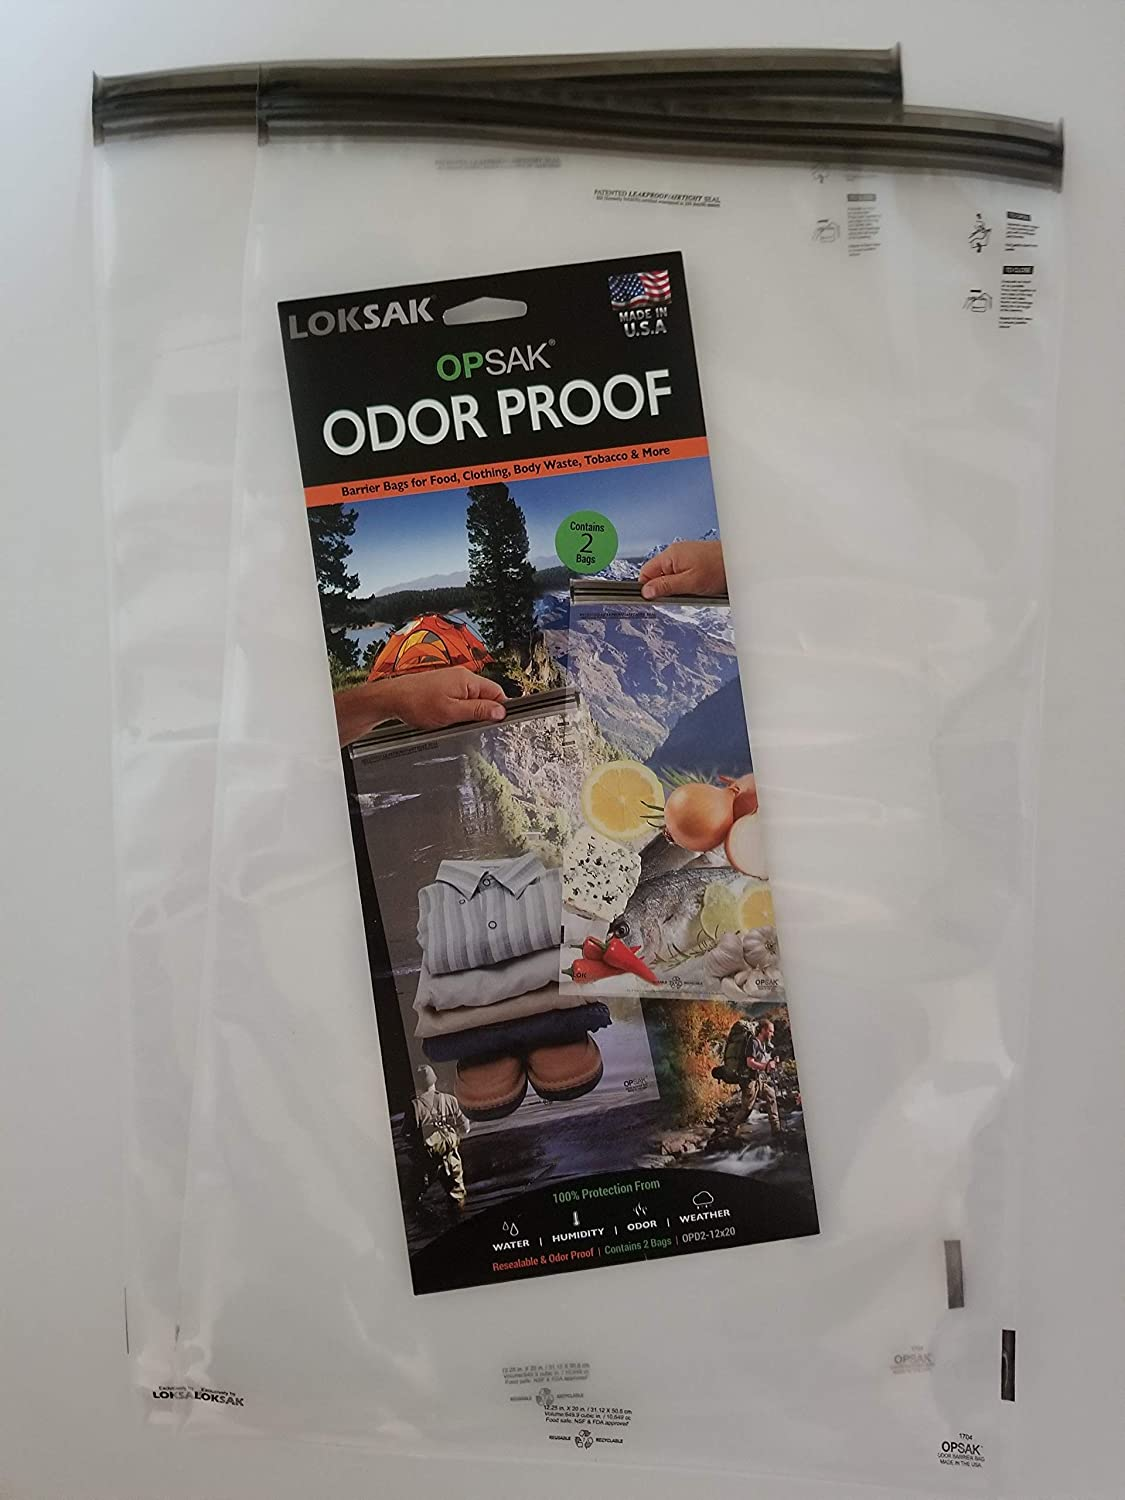 LOKSAK - OPKSAK Storage Bag, Re-Sealable and Odorless Protection from  Water, Humidity, Sand and Snow